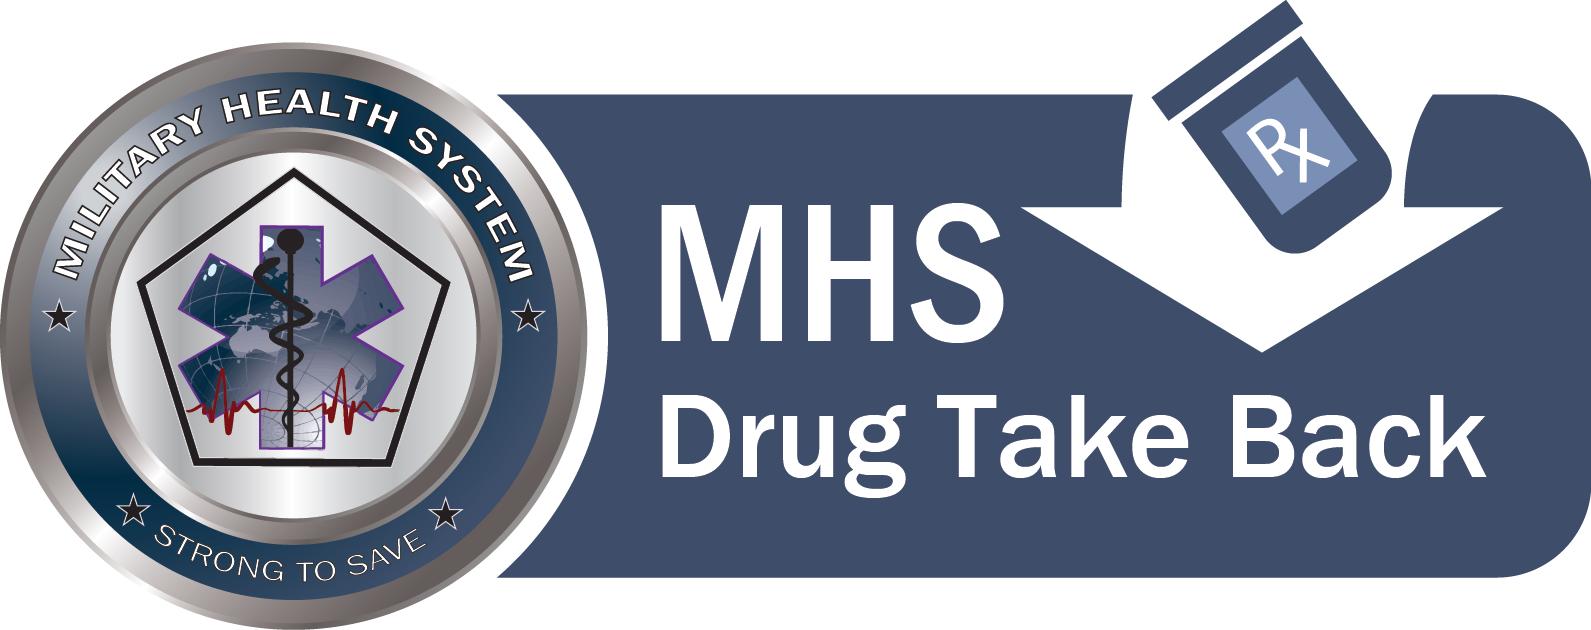 Official image of the MHS Drug Take Back Program